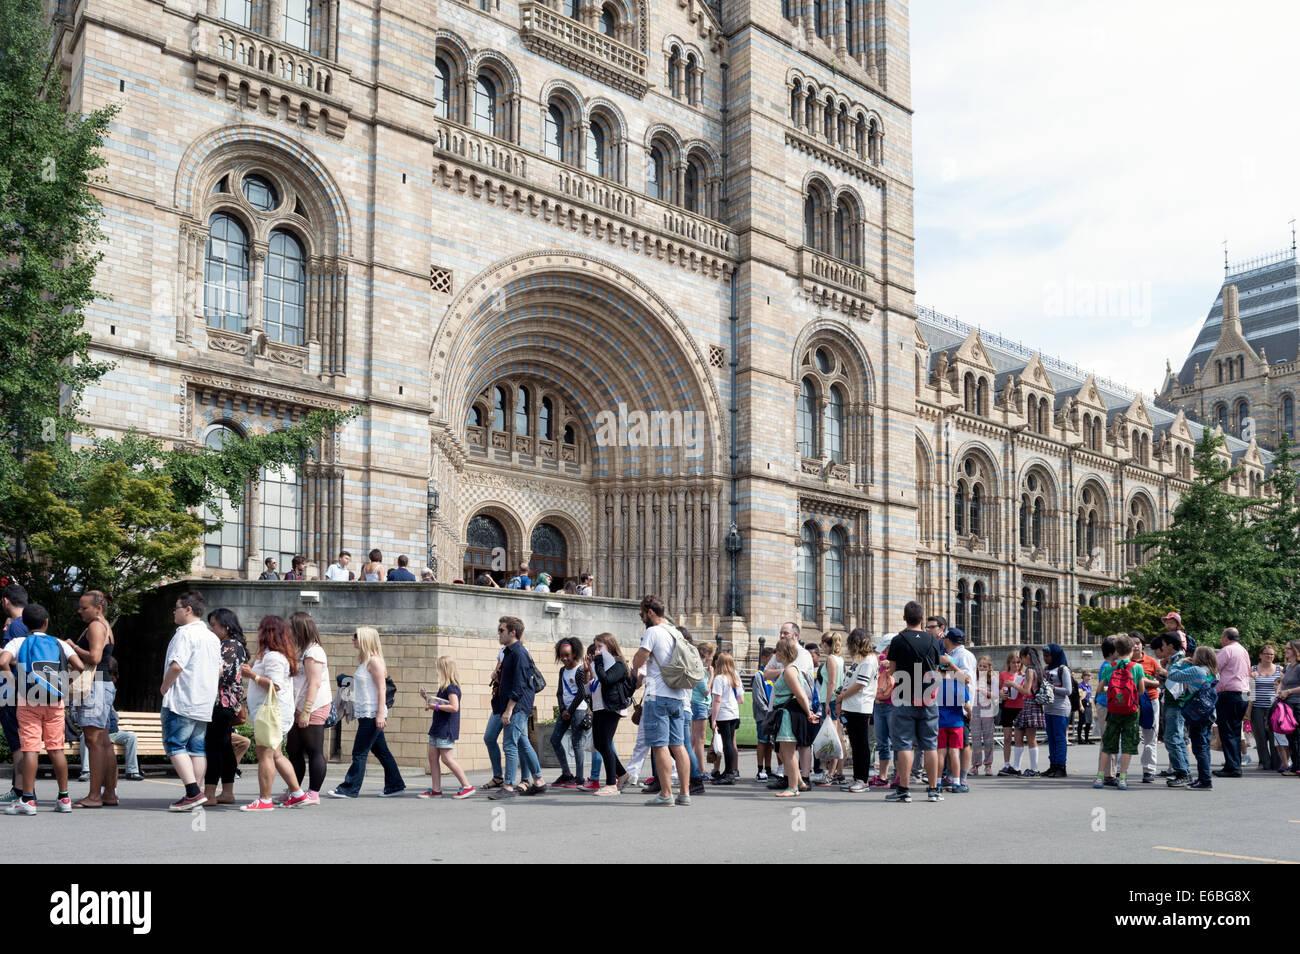 Visitors queuing outside the main entrance to the Natural History Museum London - Stock Image